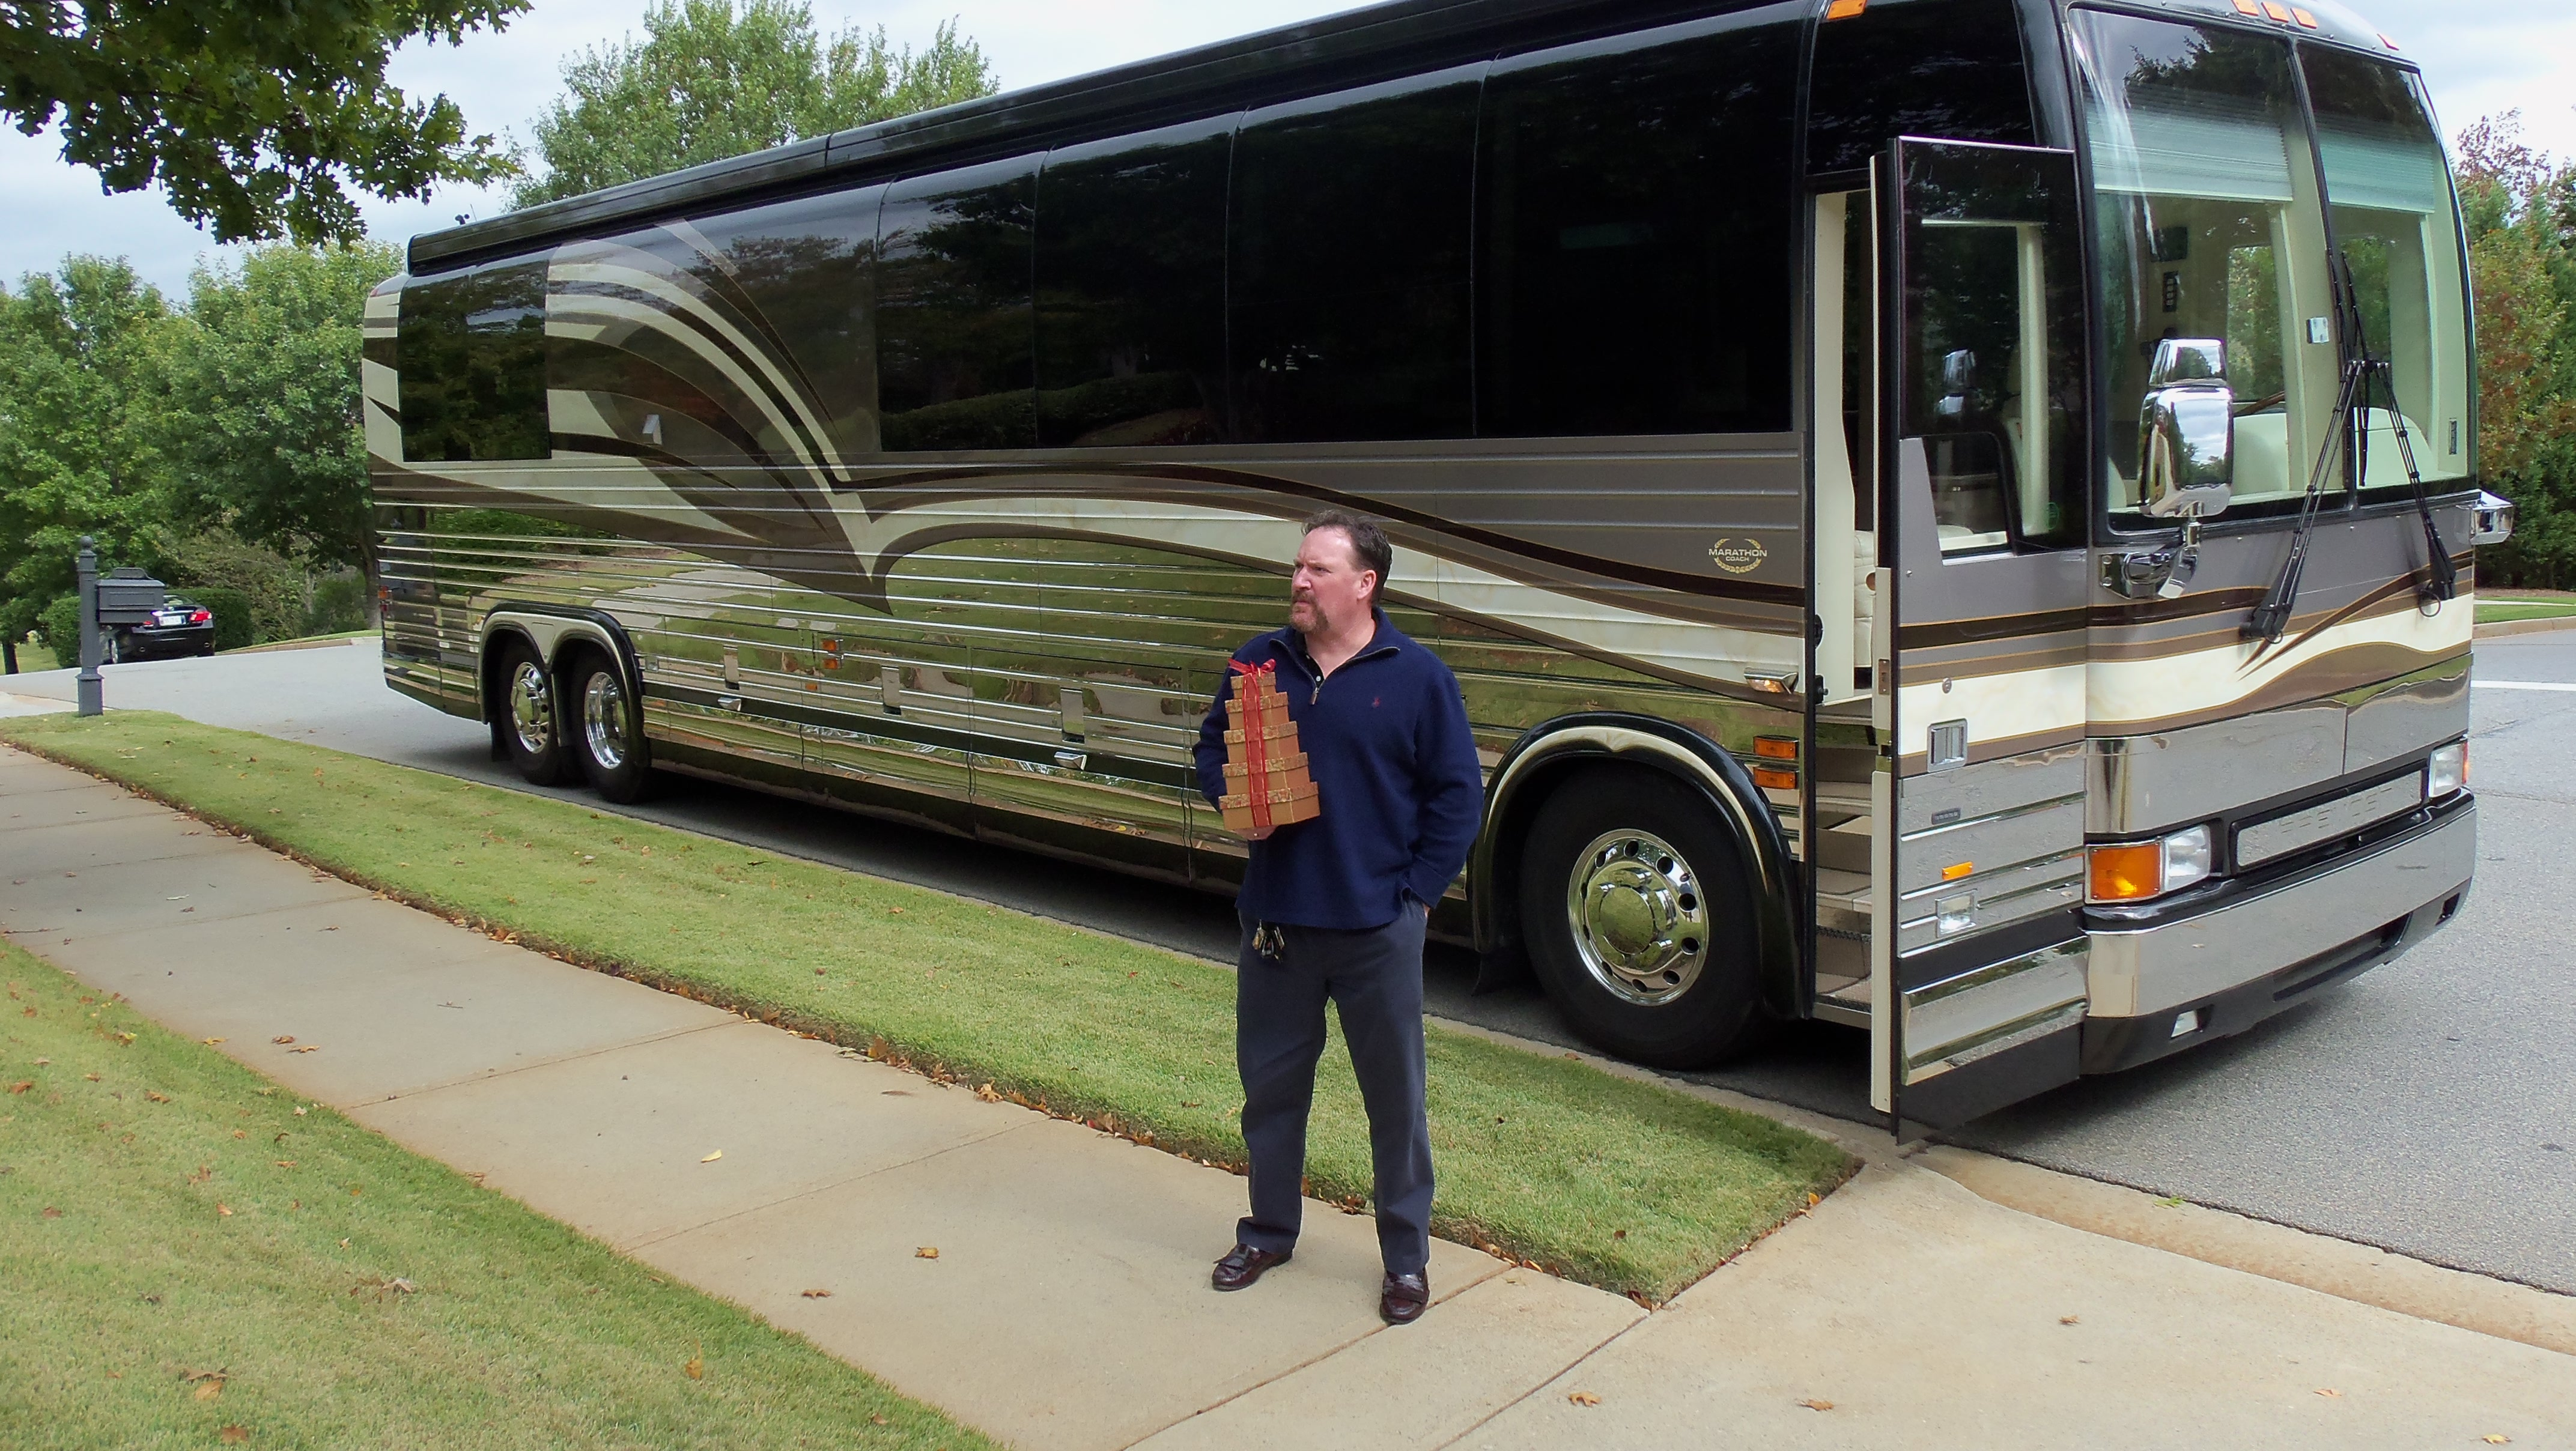 Luxury rv exterior - Luxury Motorhome Rental Private Driver Executive Services Selections A Private Driver